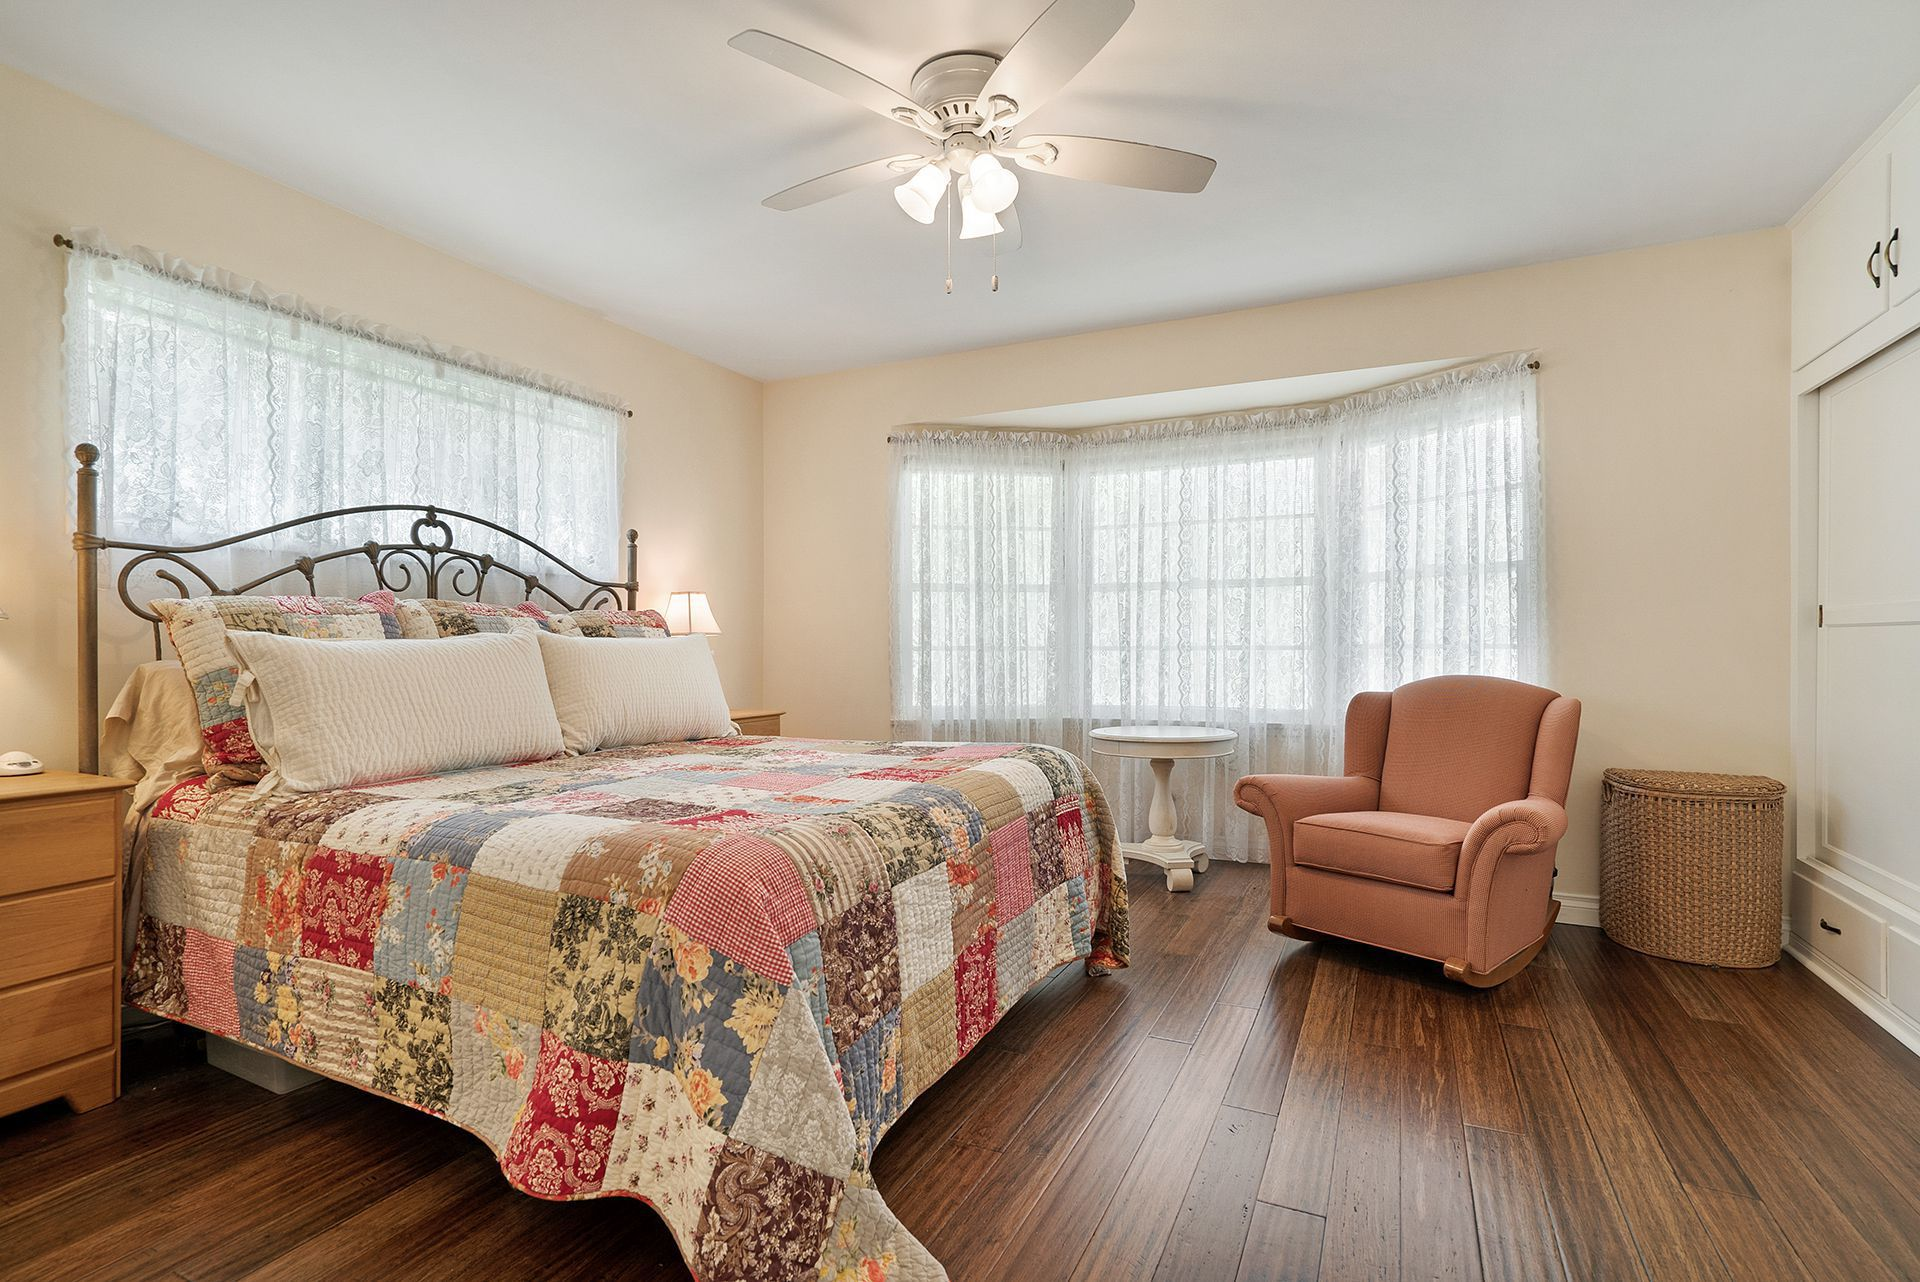 Large Bedroom Overlooking The Back Yard With Bamboo Flooring, Ceiling Fan,  And Two Closets